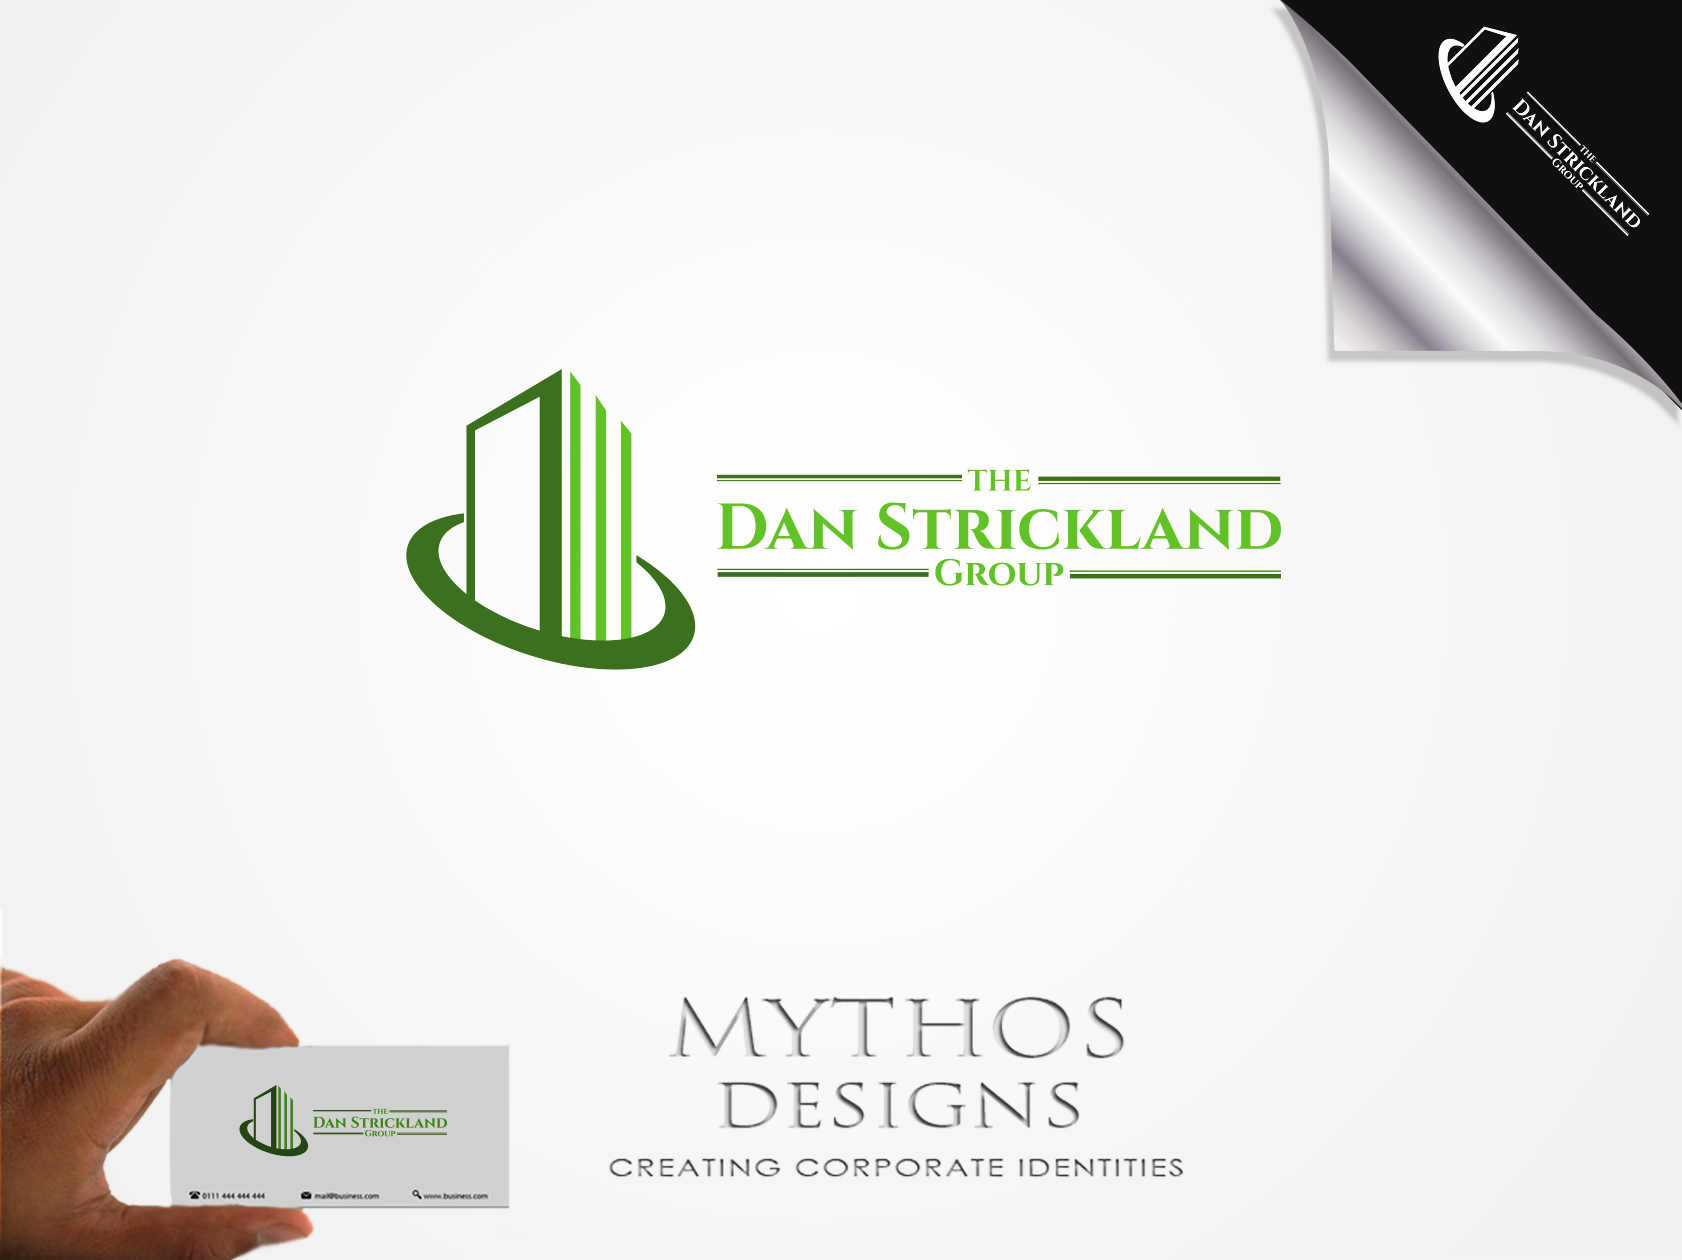 Logo Design by Mythos Designs - Entry No. 113 in the Logo Design Contest Creative Logo Design for The Dan Strickland Group.